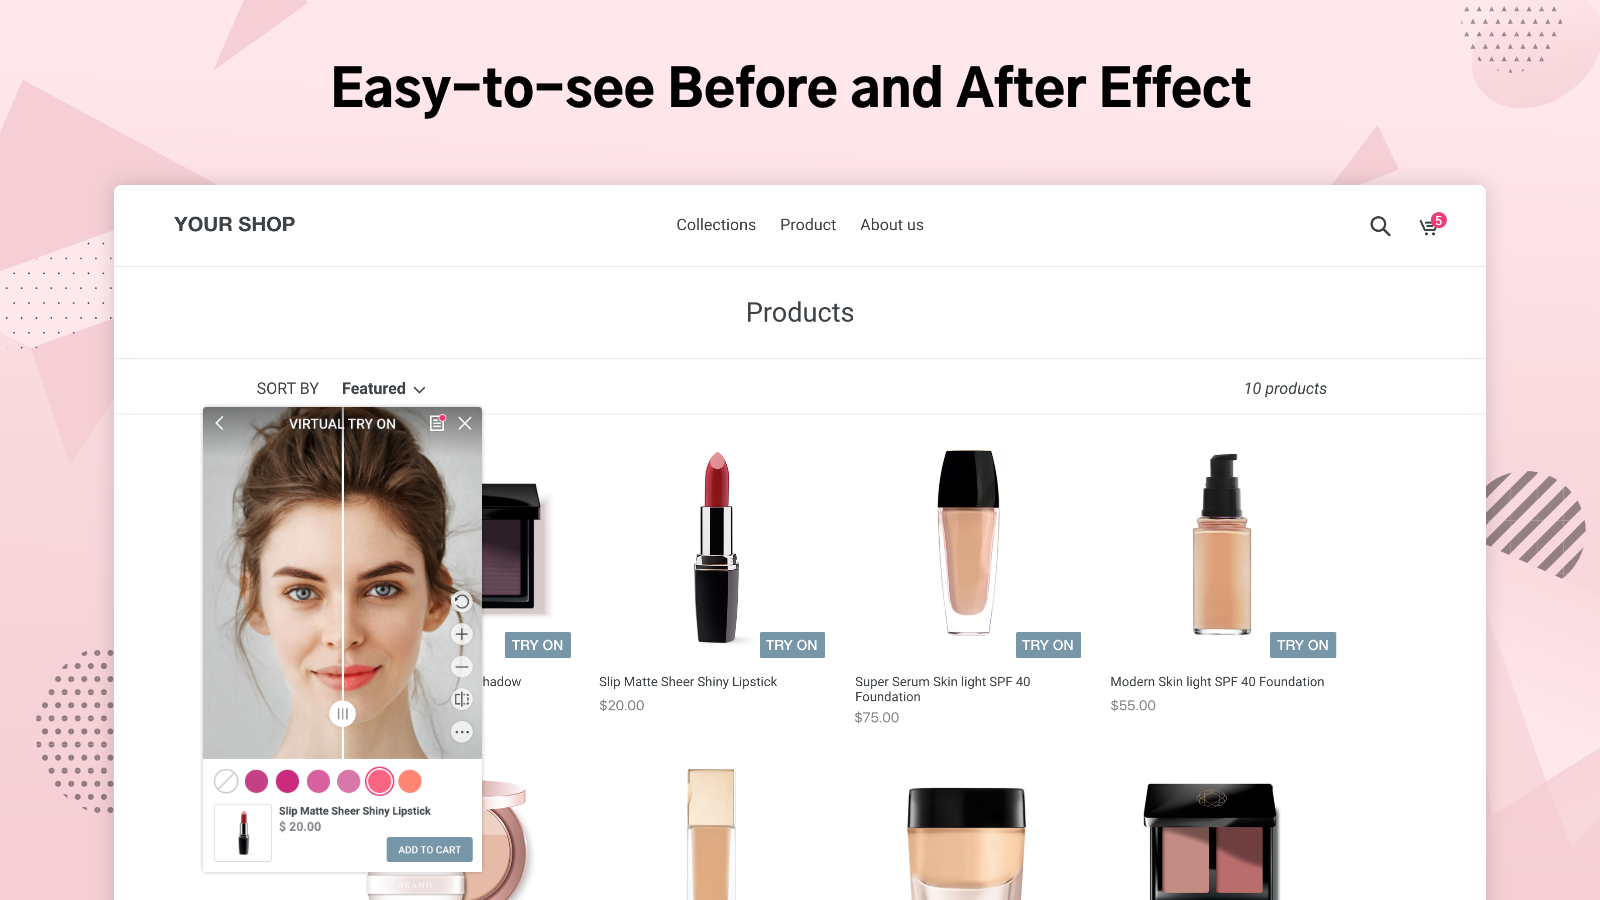 Easy-to-see Before and After Effect